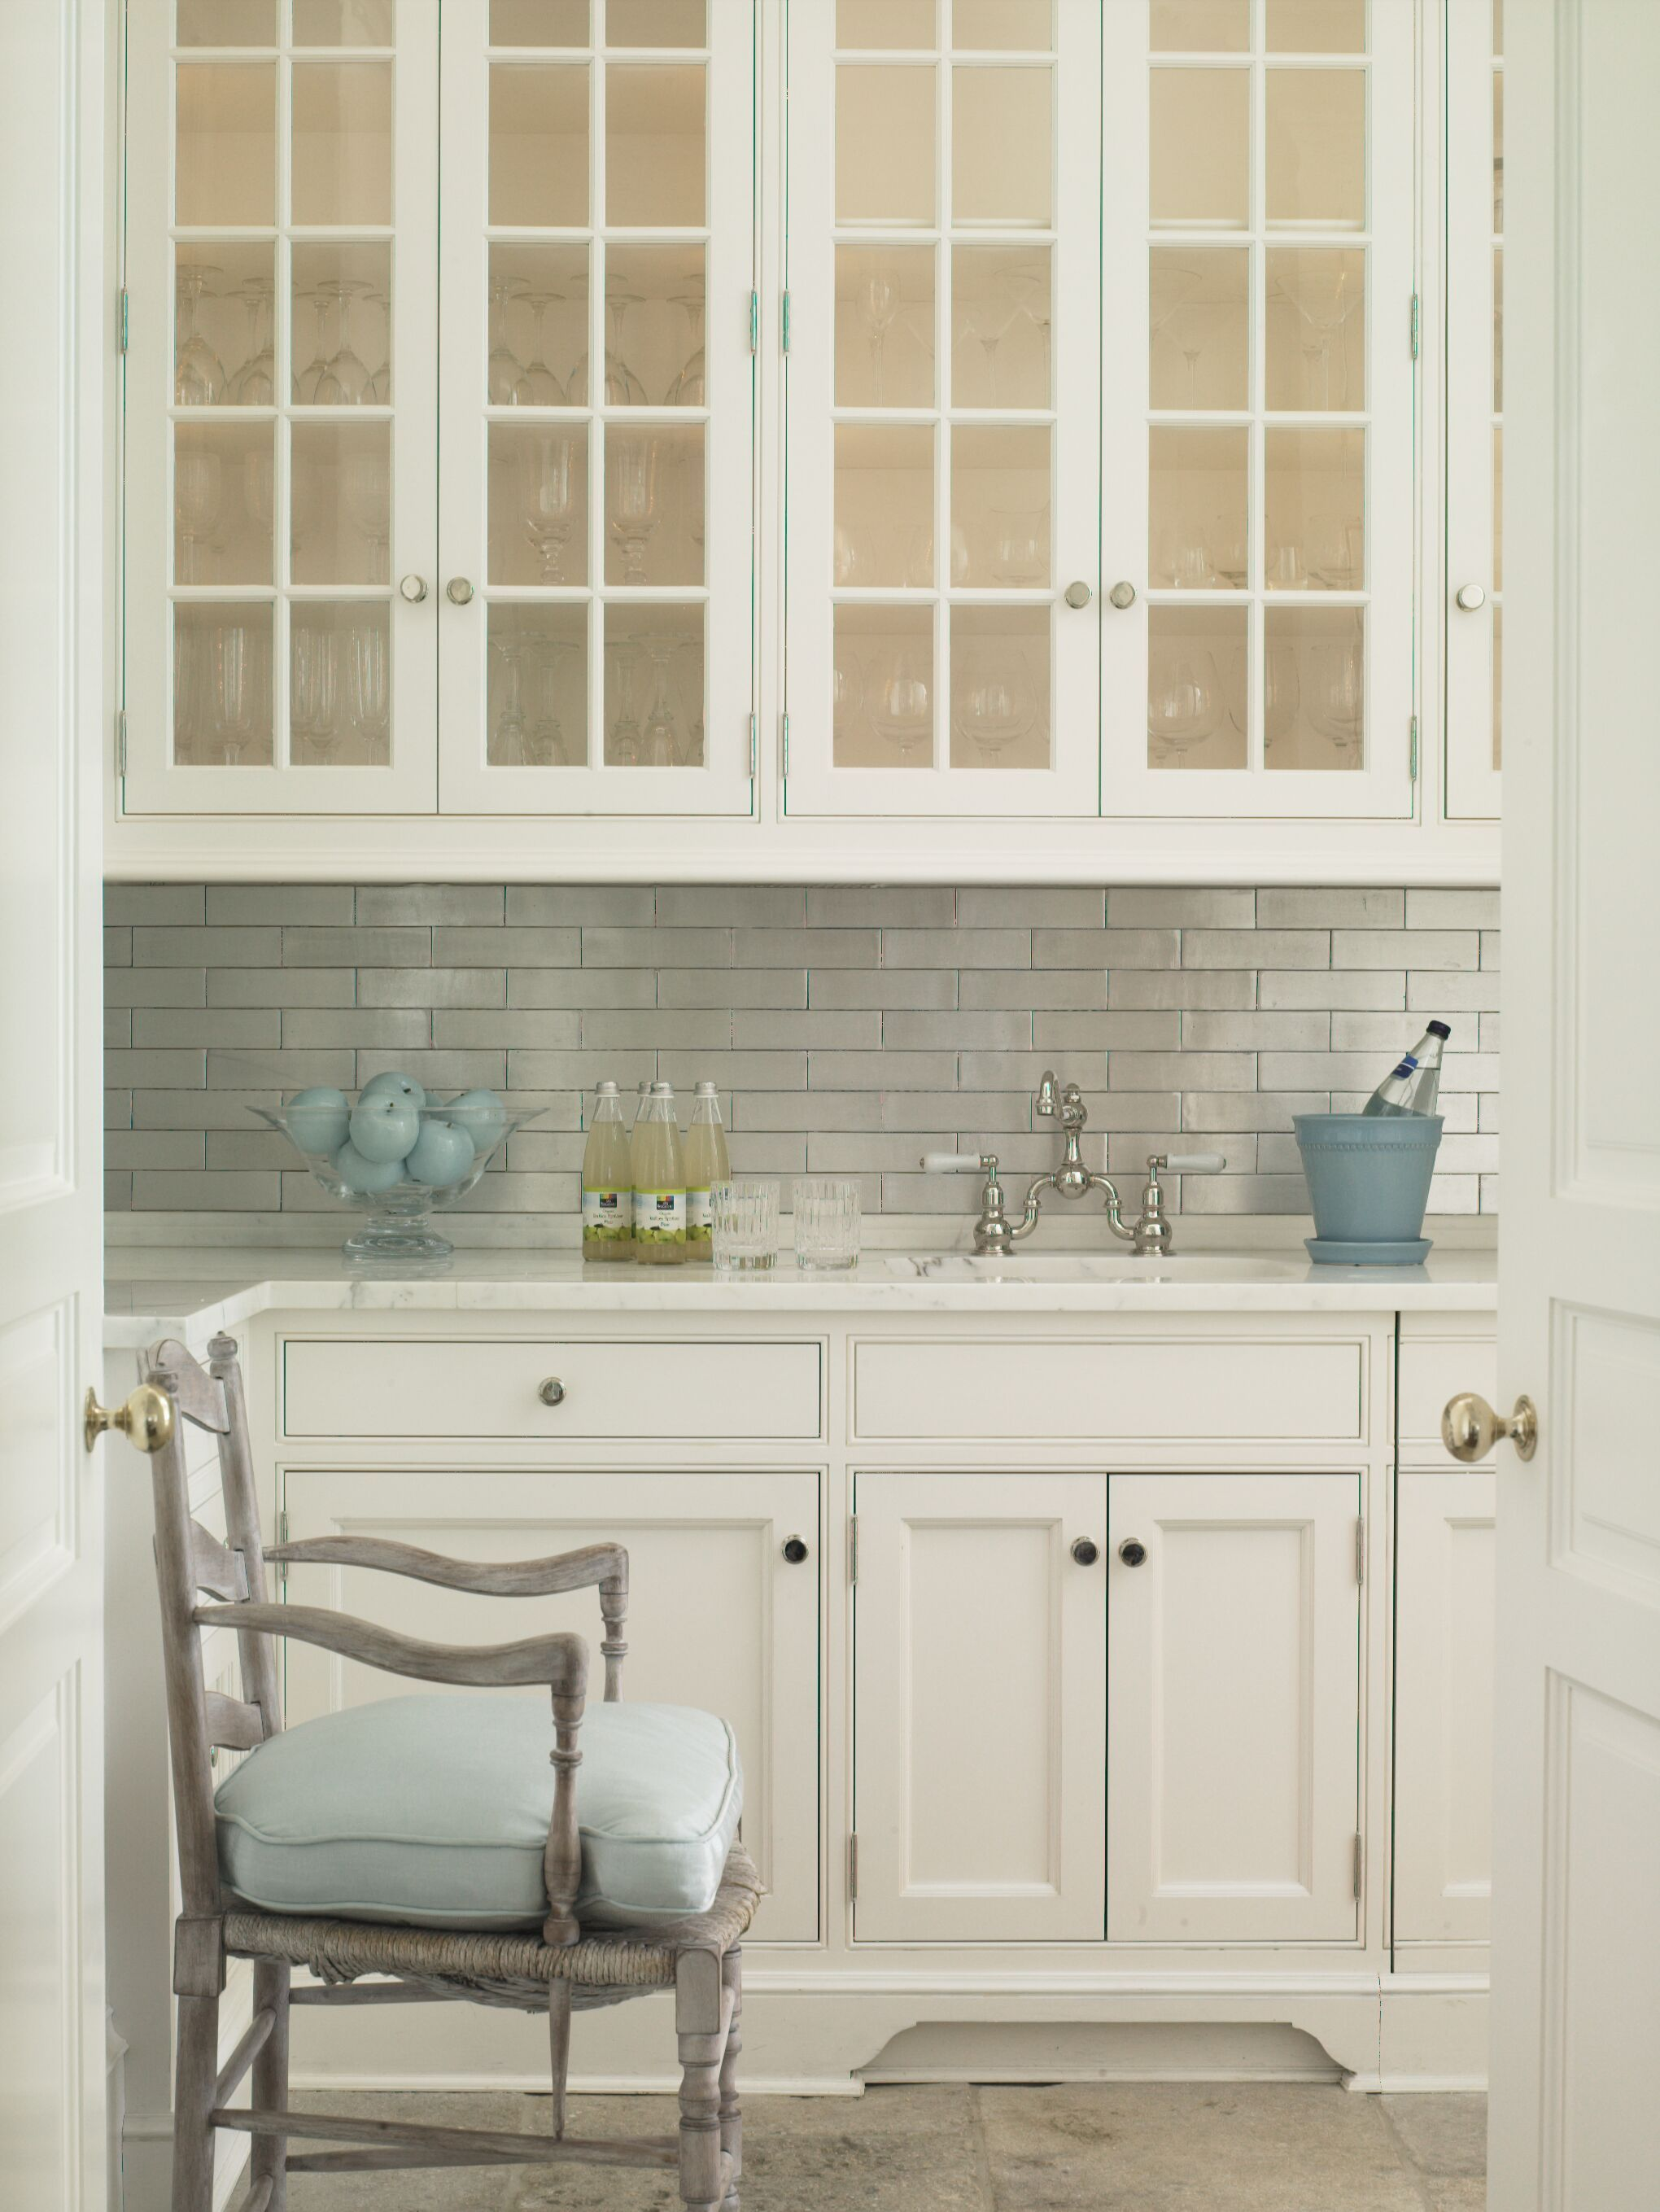 this elegant butler 39 s pantry by brooks and falotico rowayton ct features a sink marble. Black Bedroom Furniture Sets. Home Design Ideas